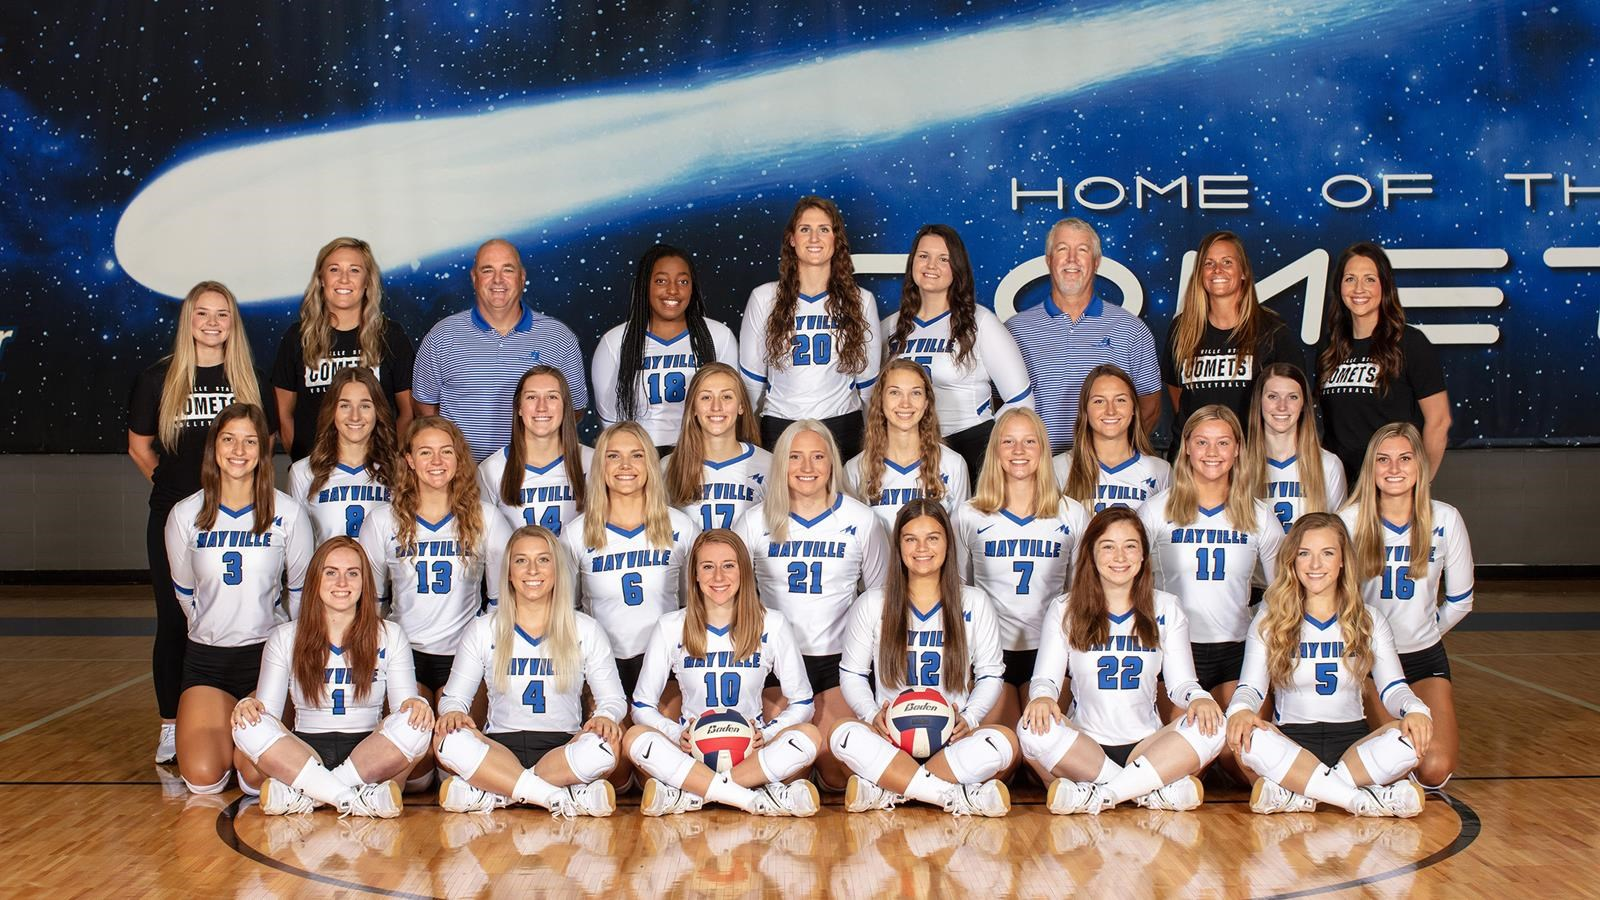 2020 Volleyball Roster Mayville State University Athletics